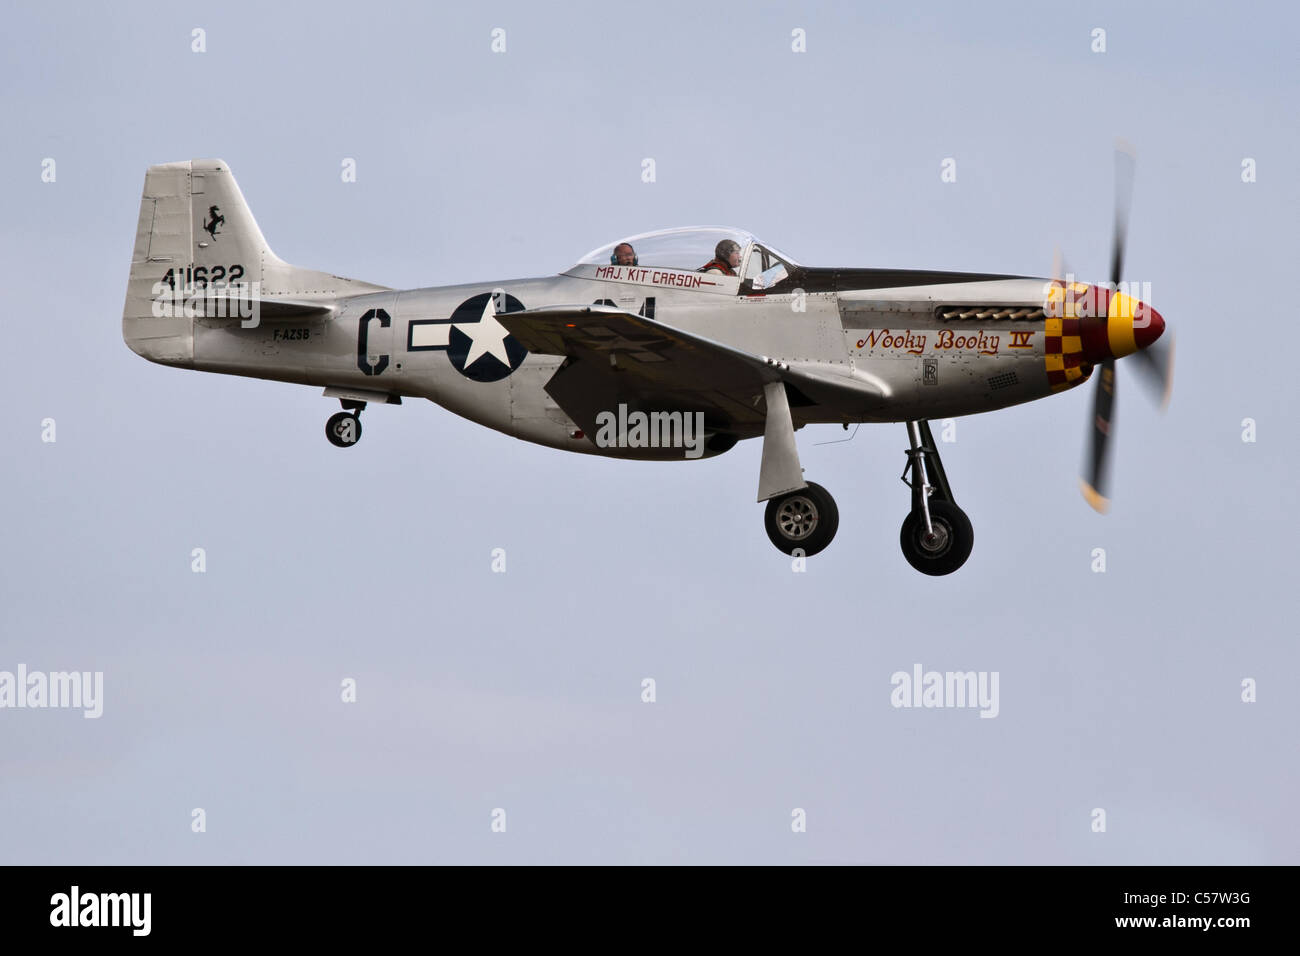 North American P-51D Mustang Nooky Booky IV about to land at the IWM Duxford - Stock Image